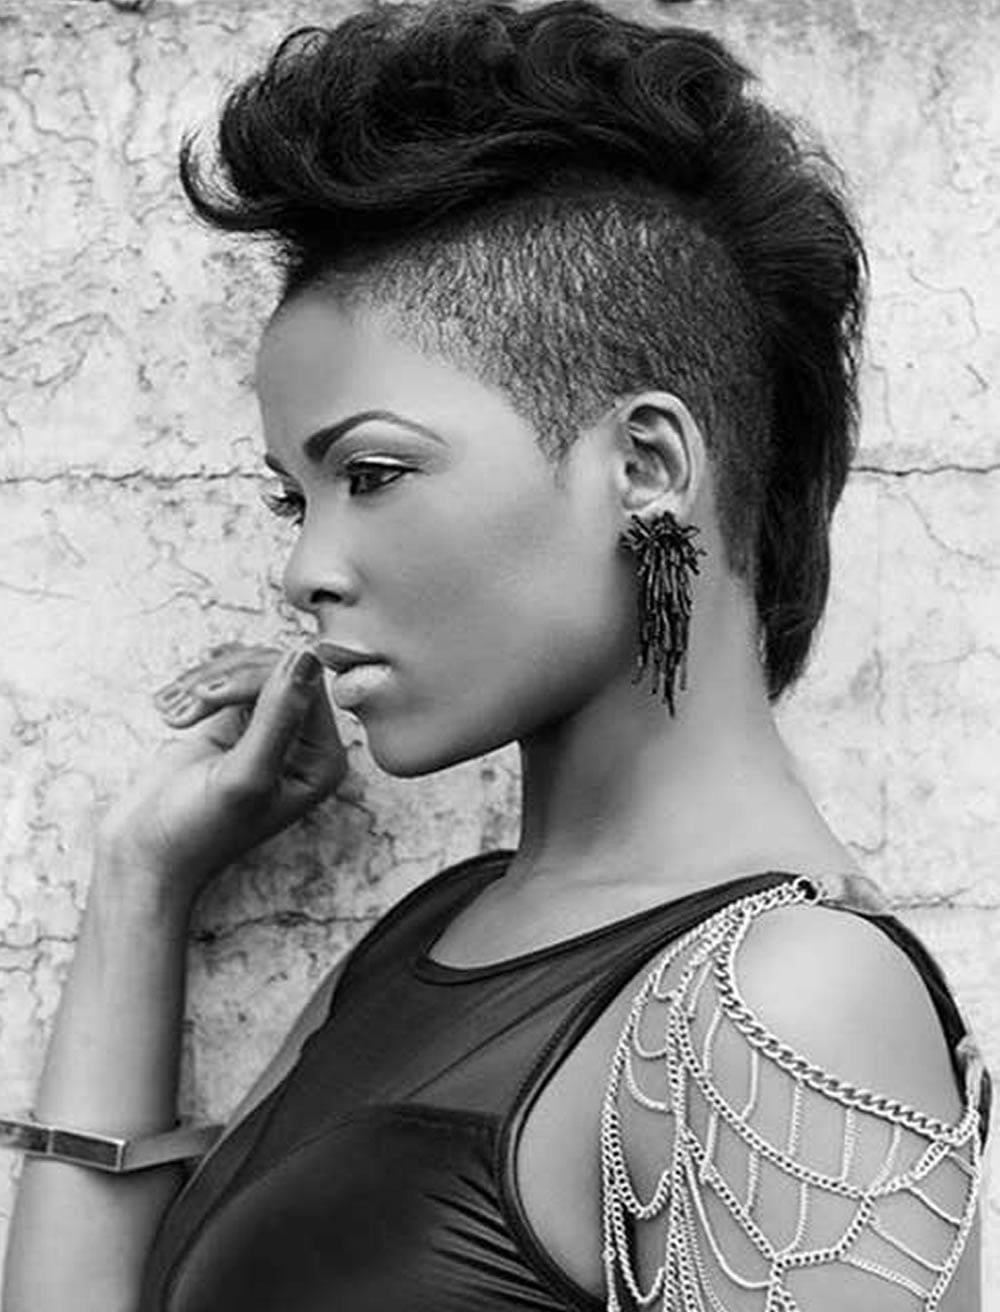 Mohawk Black Women Hairstyles For Summer 2018 2019 Page